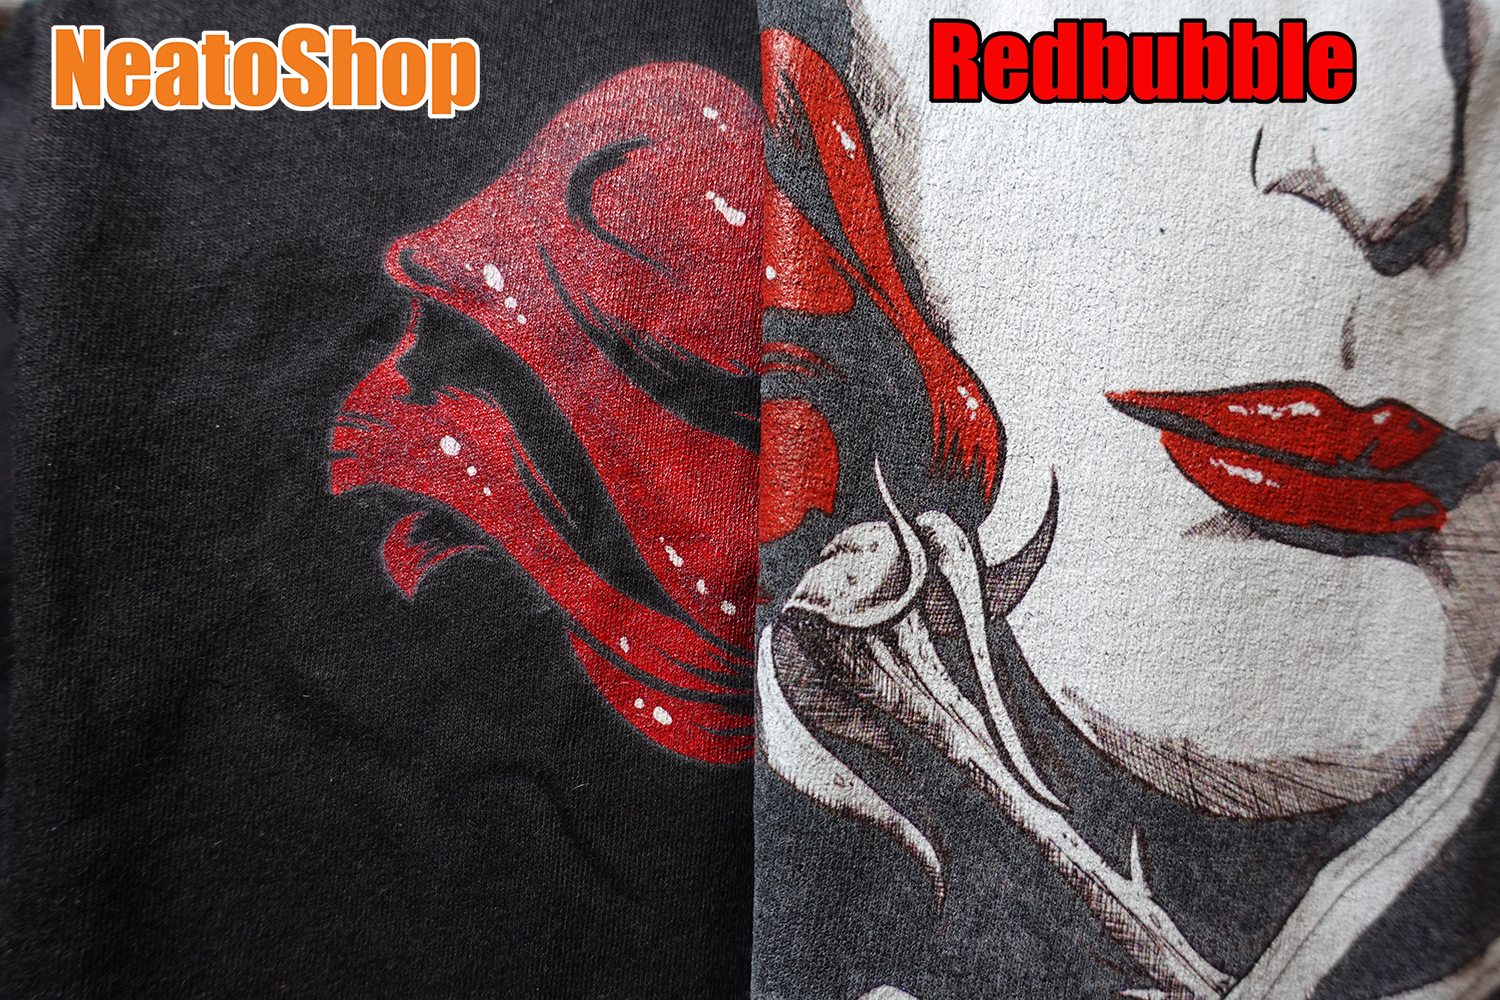 NeatoShop Vs Redbubble Side By Side Print Comparison 1